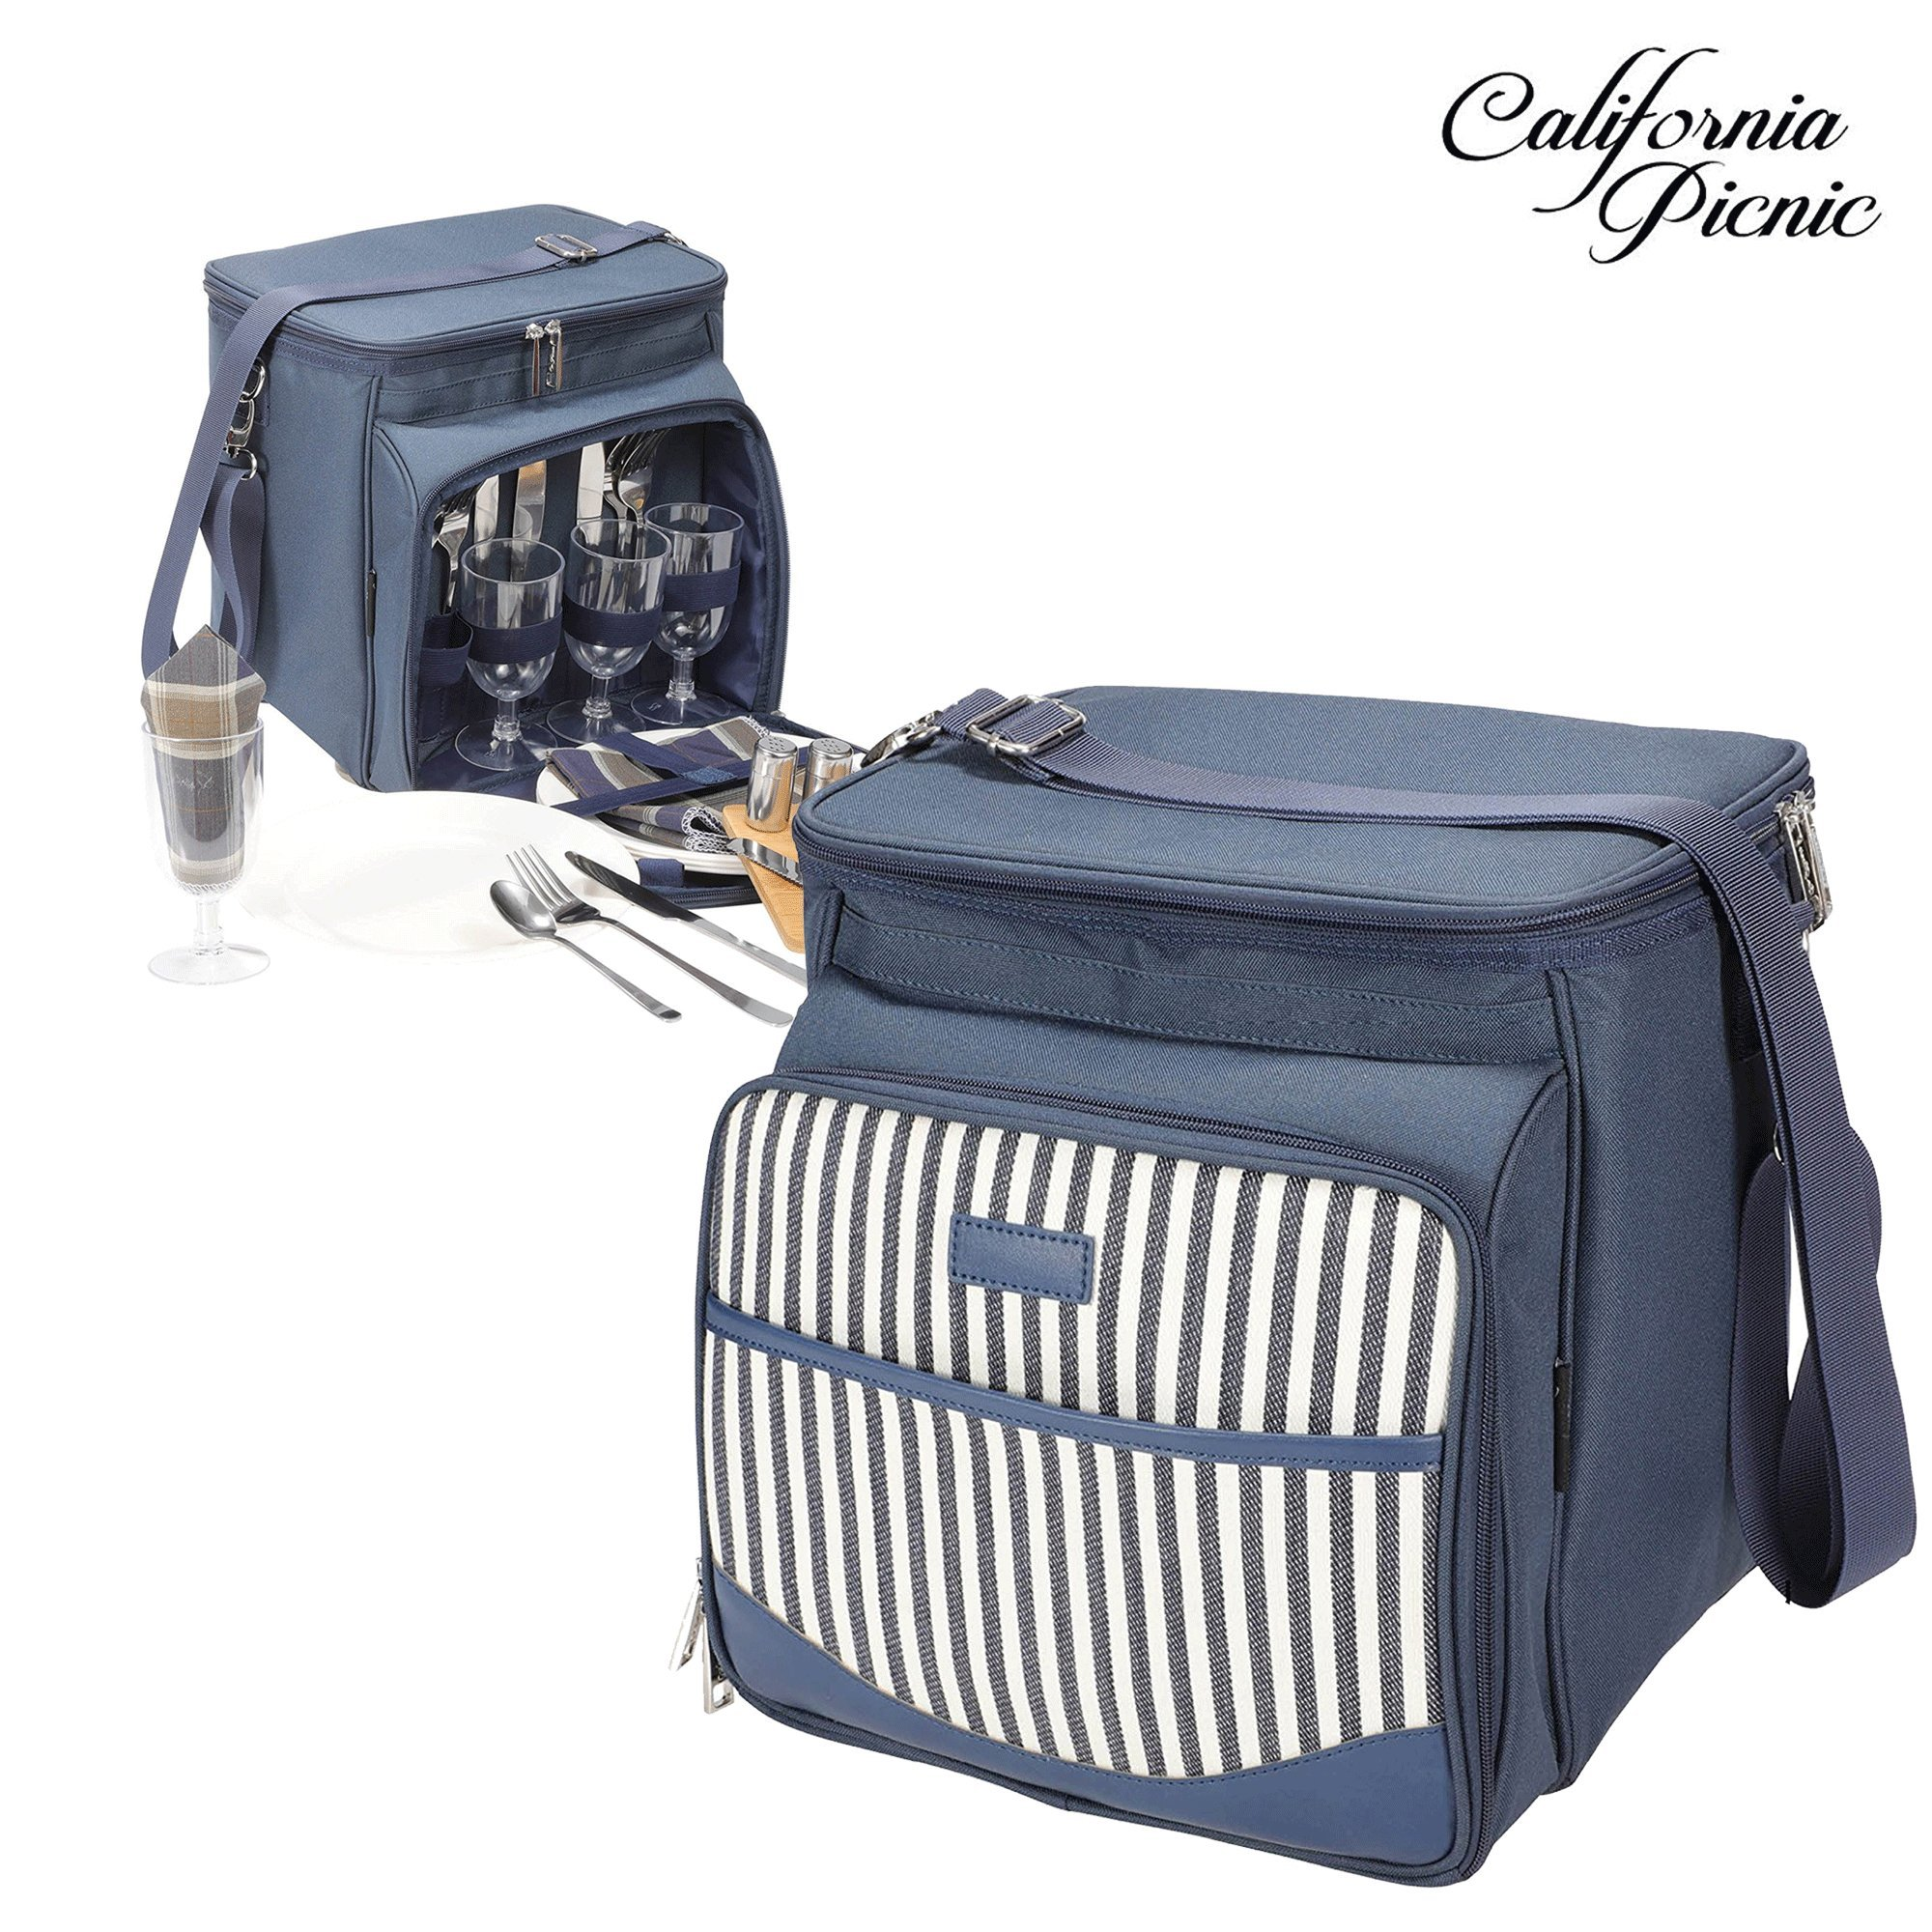 Picnic Basket Tote | Picnic Shoulder Bag Set | Stylish All-in-One Portable Picnic Bag for 4 with Complete Cutlery Set | Salt/Pepper Shakers | Cheese Board | Cooler Bag for Camping | Insulated Tote Bag by CALIFORNIA PICNIC